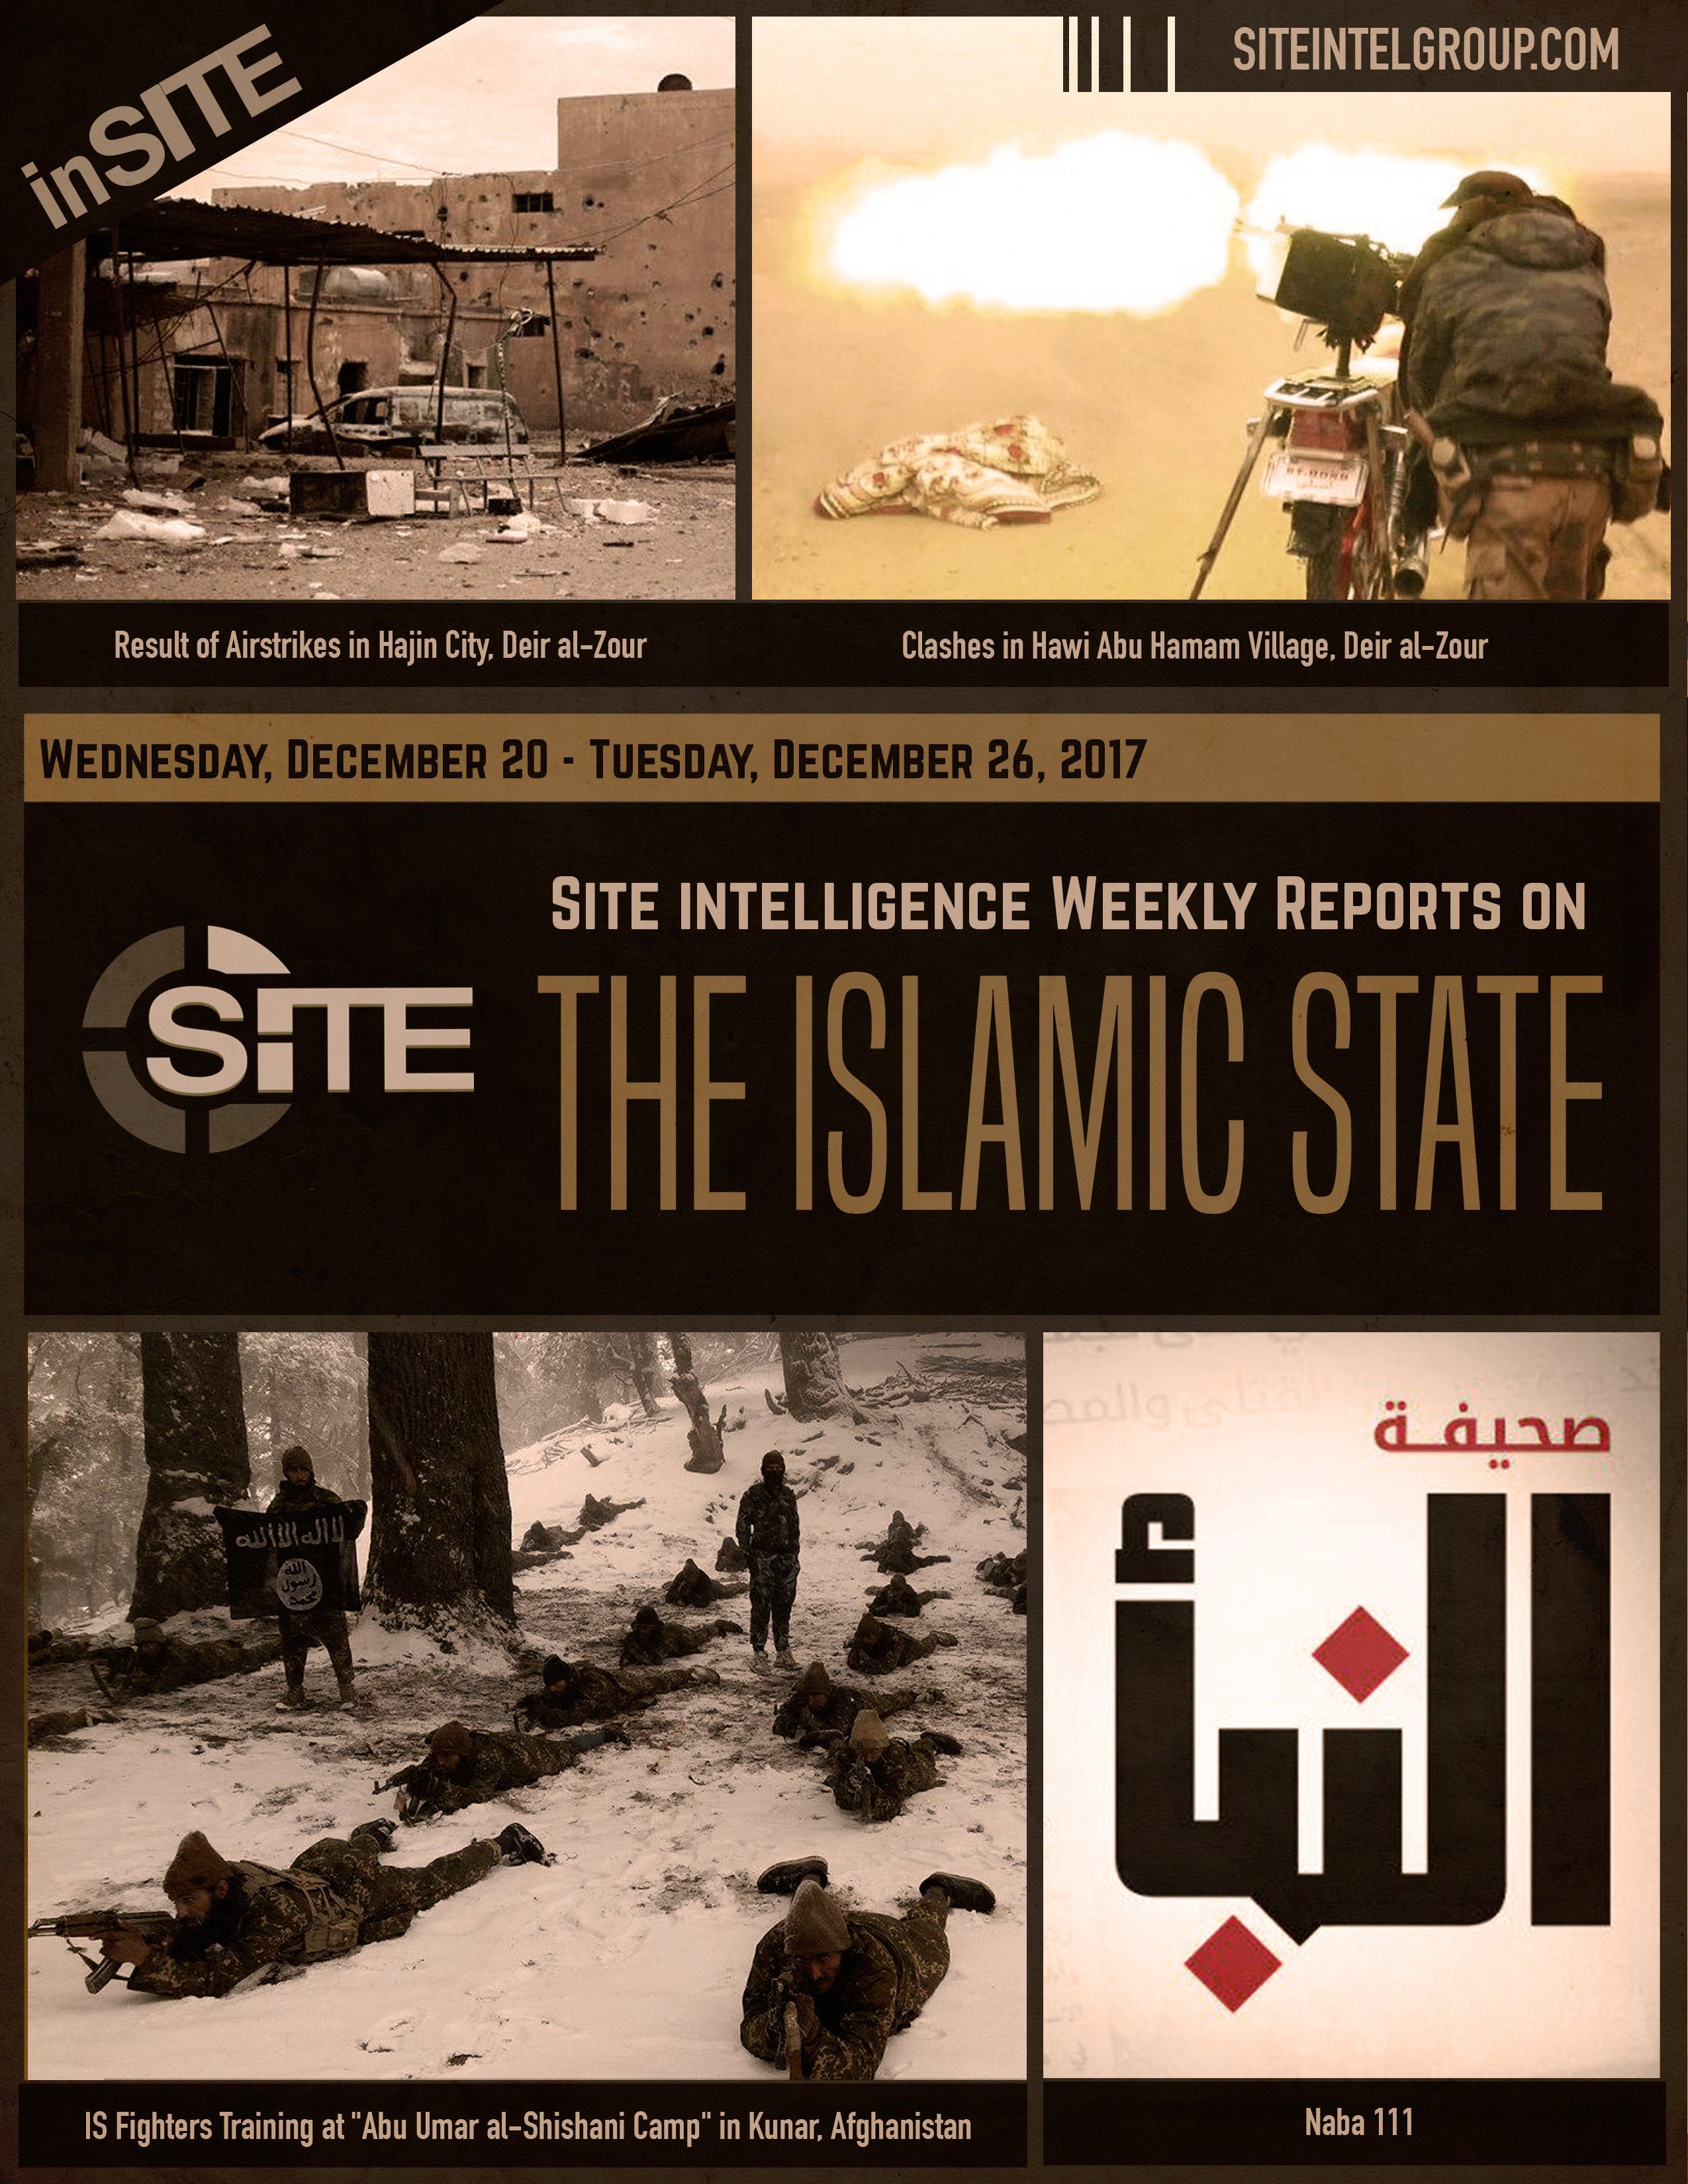 Weekly inSITE on the Islamic State, December 20-26